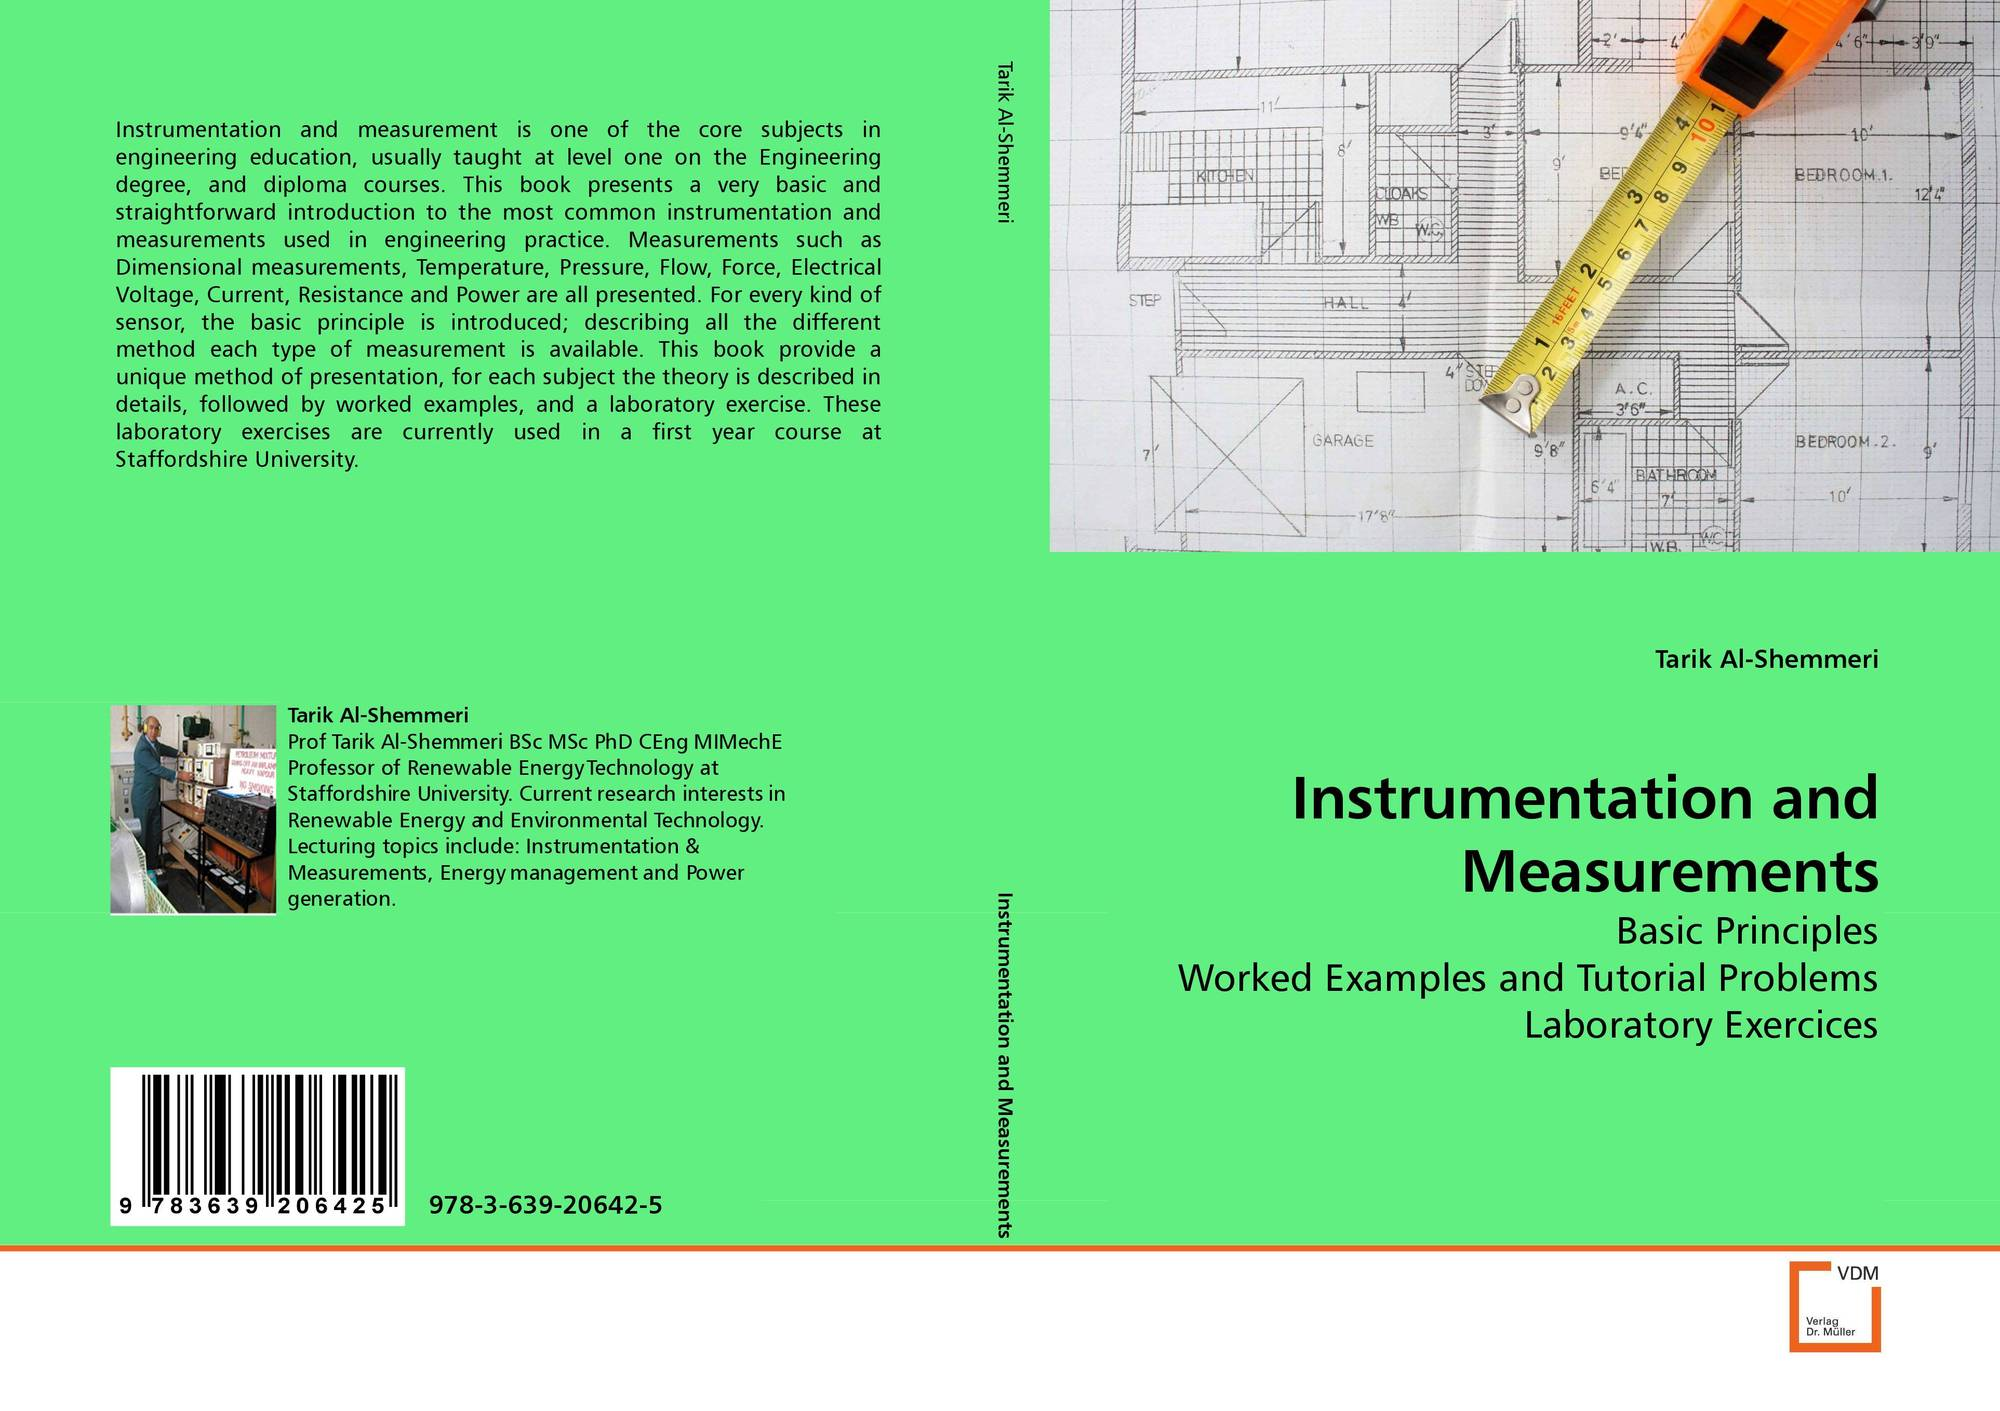 Search Results For Piping And Instrumentation Diagram Tutorial Bookcover Of Measurements Omni Badge 9307e2201e5f762643a64561af3456be64a87707602f96b92ef18a9bbcada116